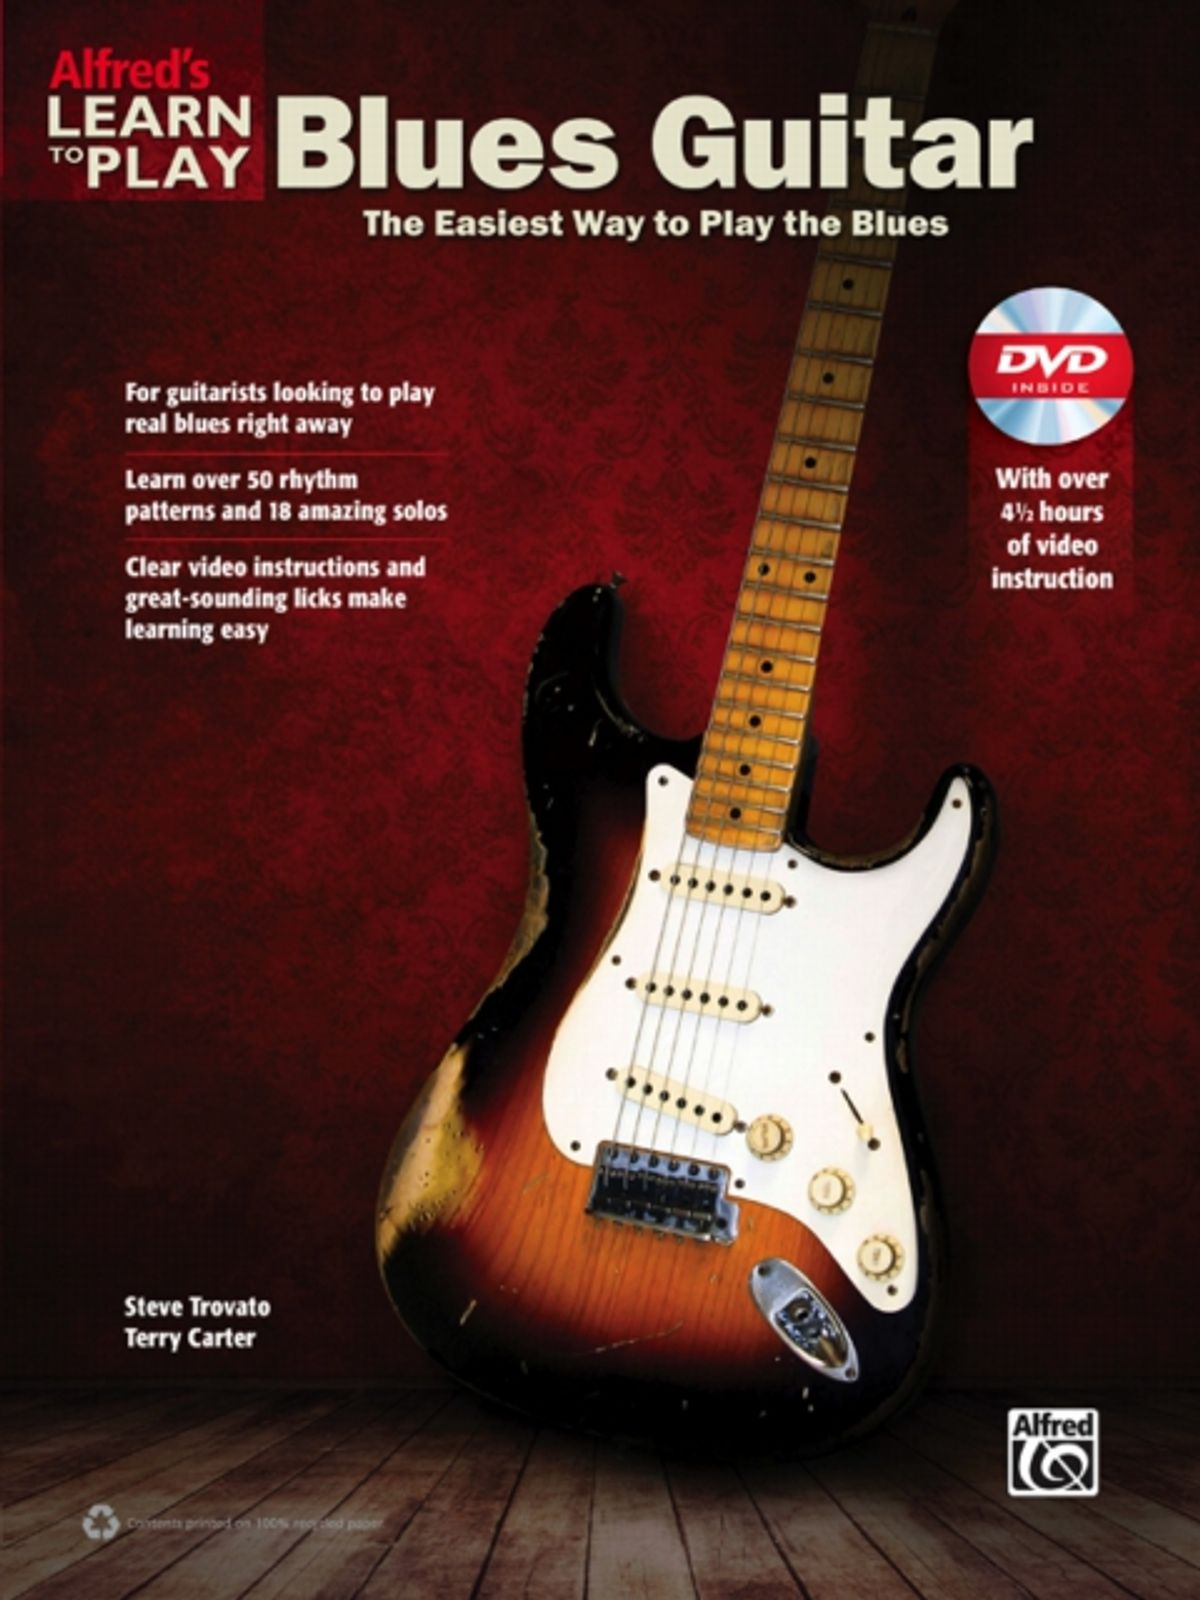 """Alfred Releases """"Learn to Play Blues Guitar"""" Book and DVD"""